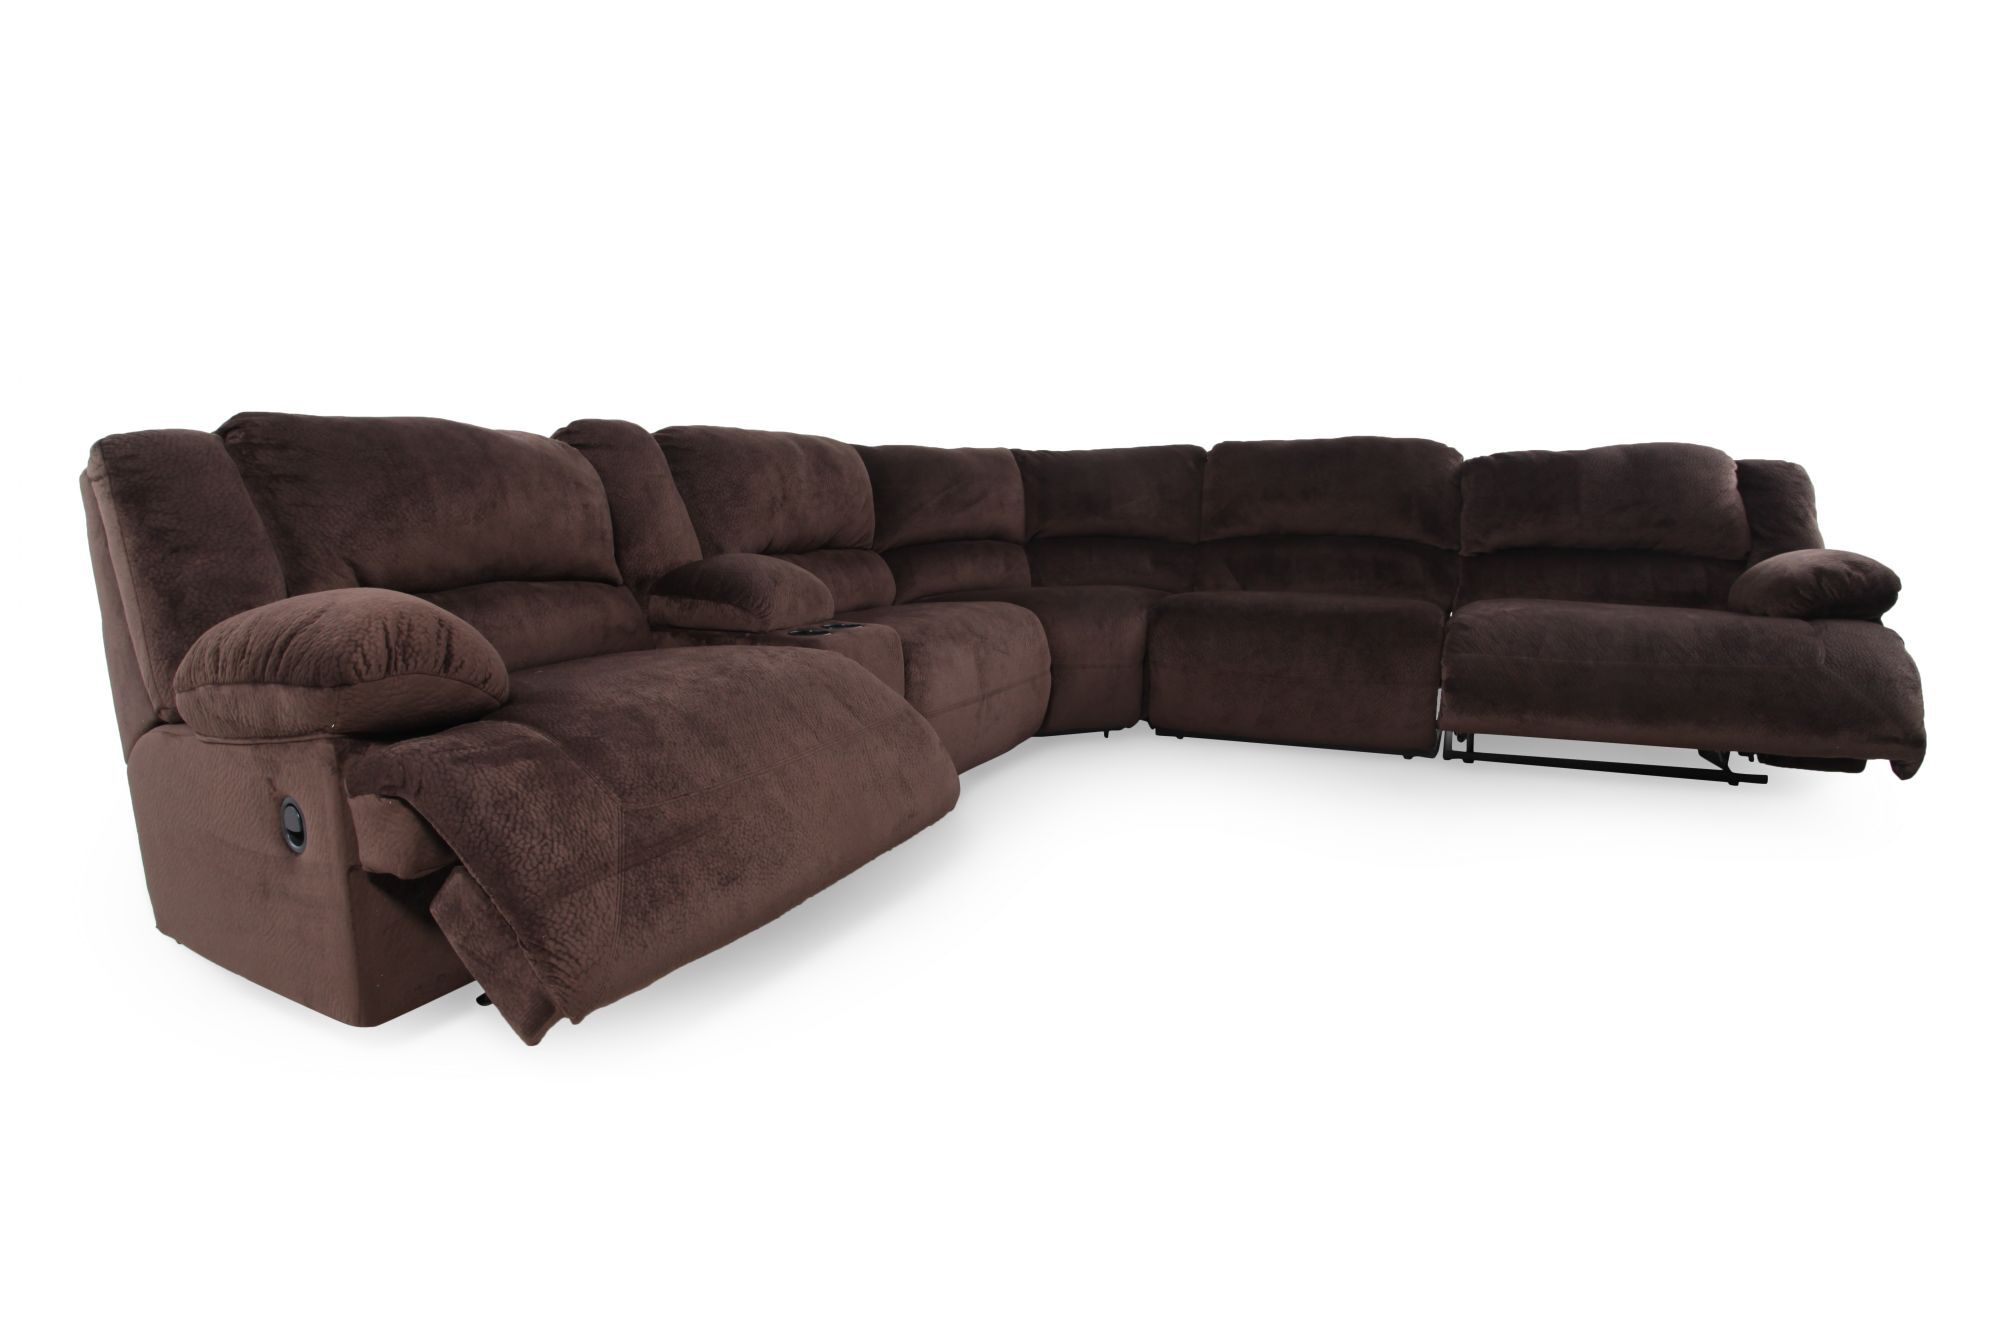 Microfiber 131.5u0026quot; Sectional In Chocolate Brown Microfiber 131.5u0026quot;  Sectional In Chocolate Brown